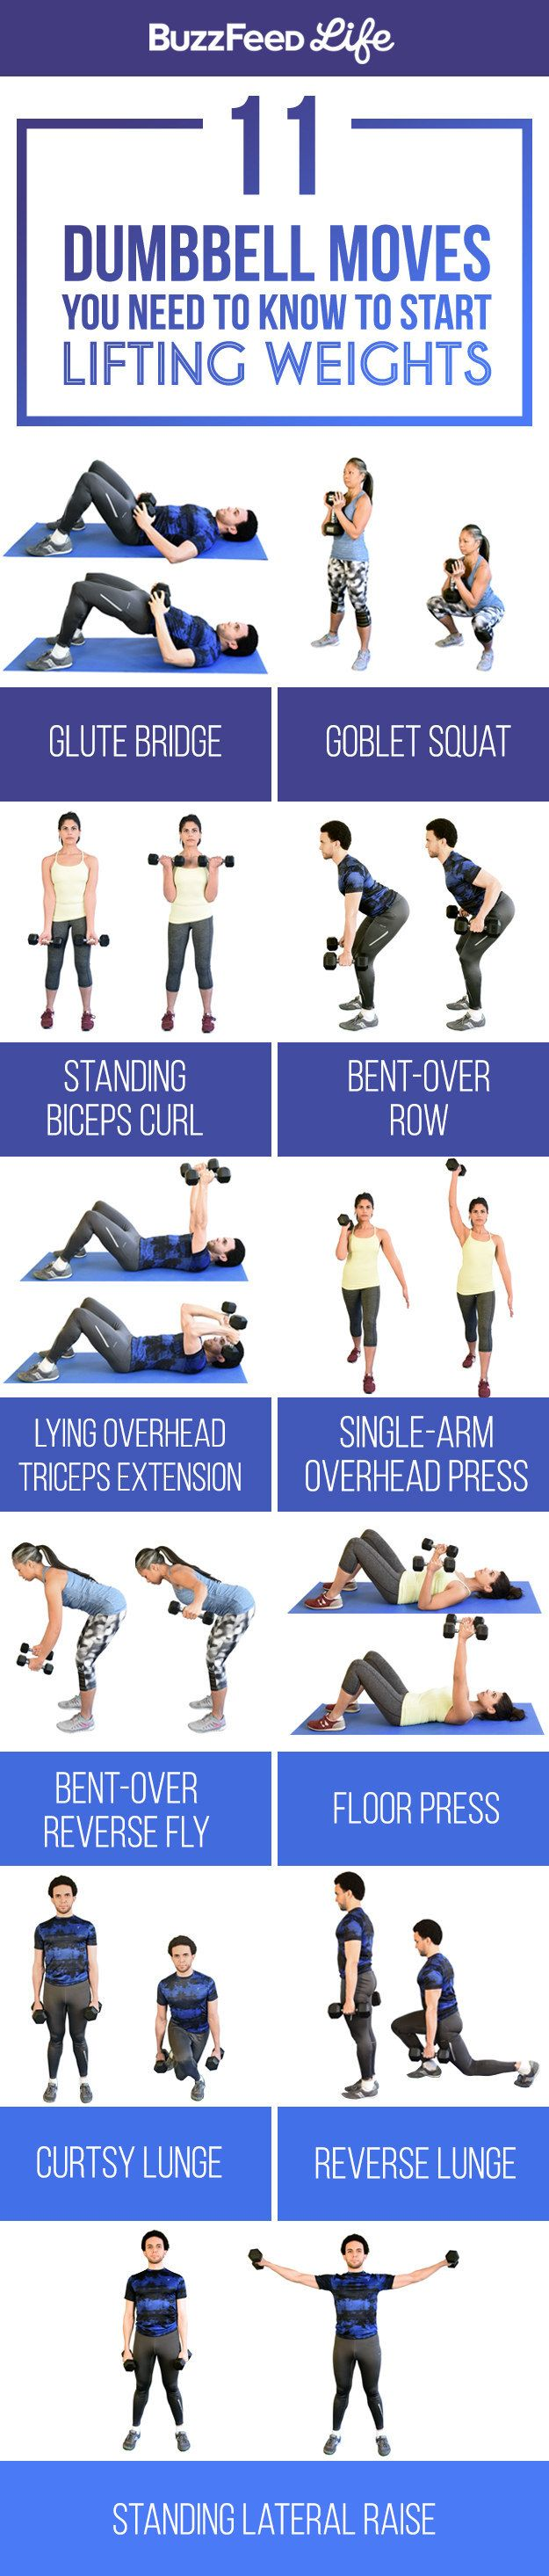 11 Dumbbell Moves You Should Know To Start Lifting Weights More